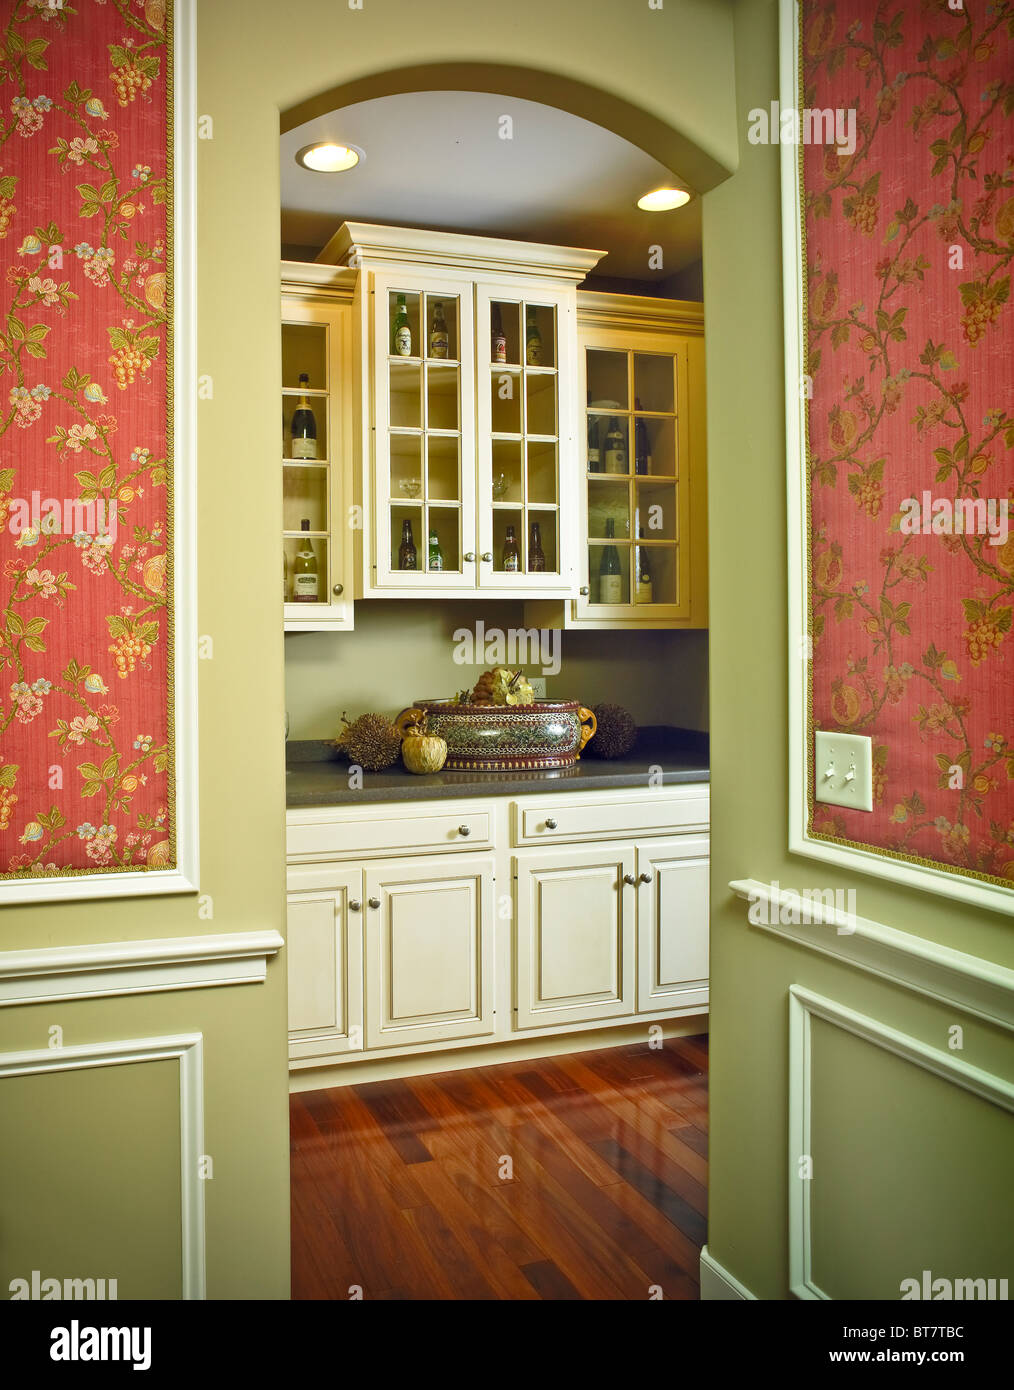 Kitchen Alcove Kitchen Alcove Cabinets Stock Photo Royalty Free Image 32134912